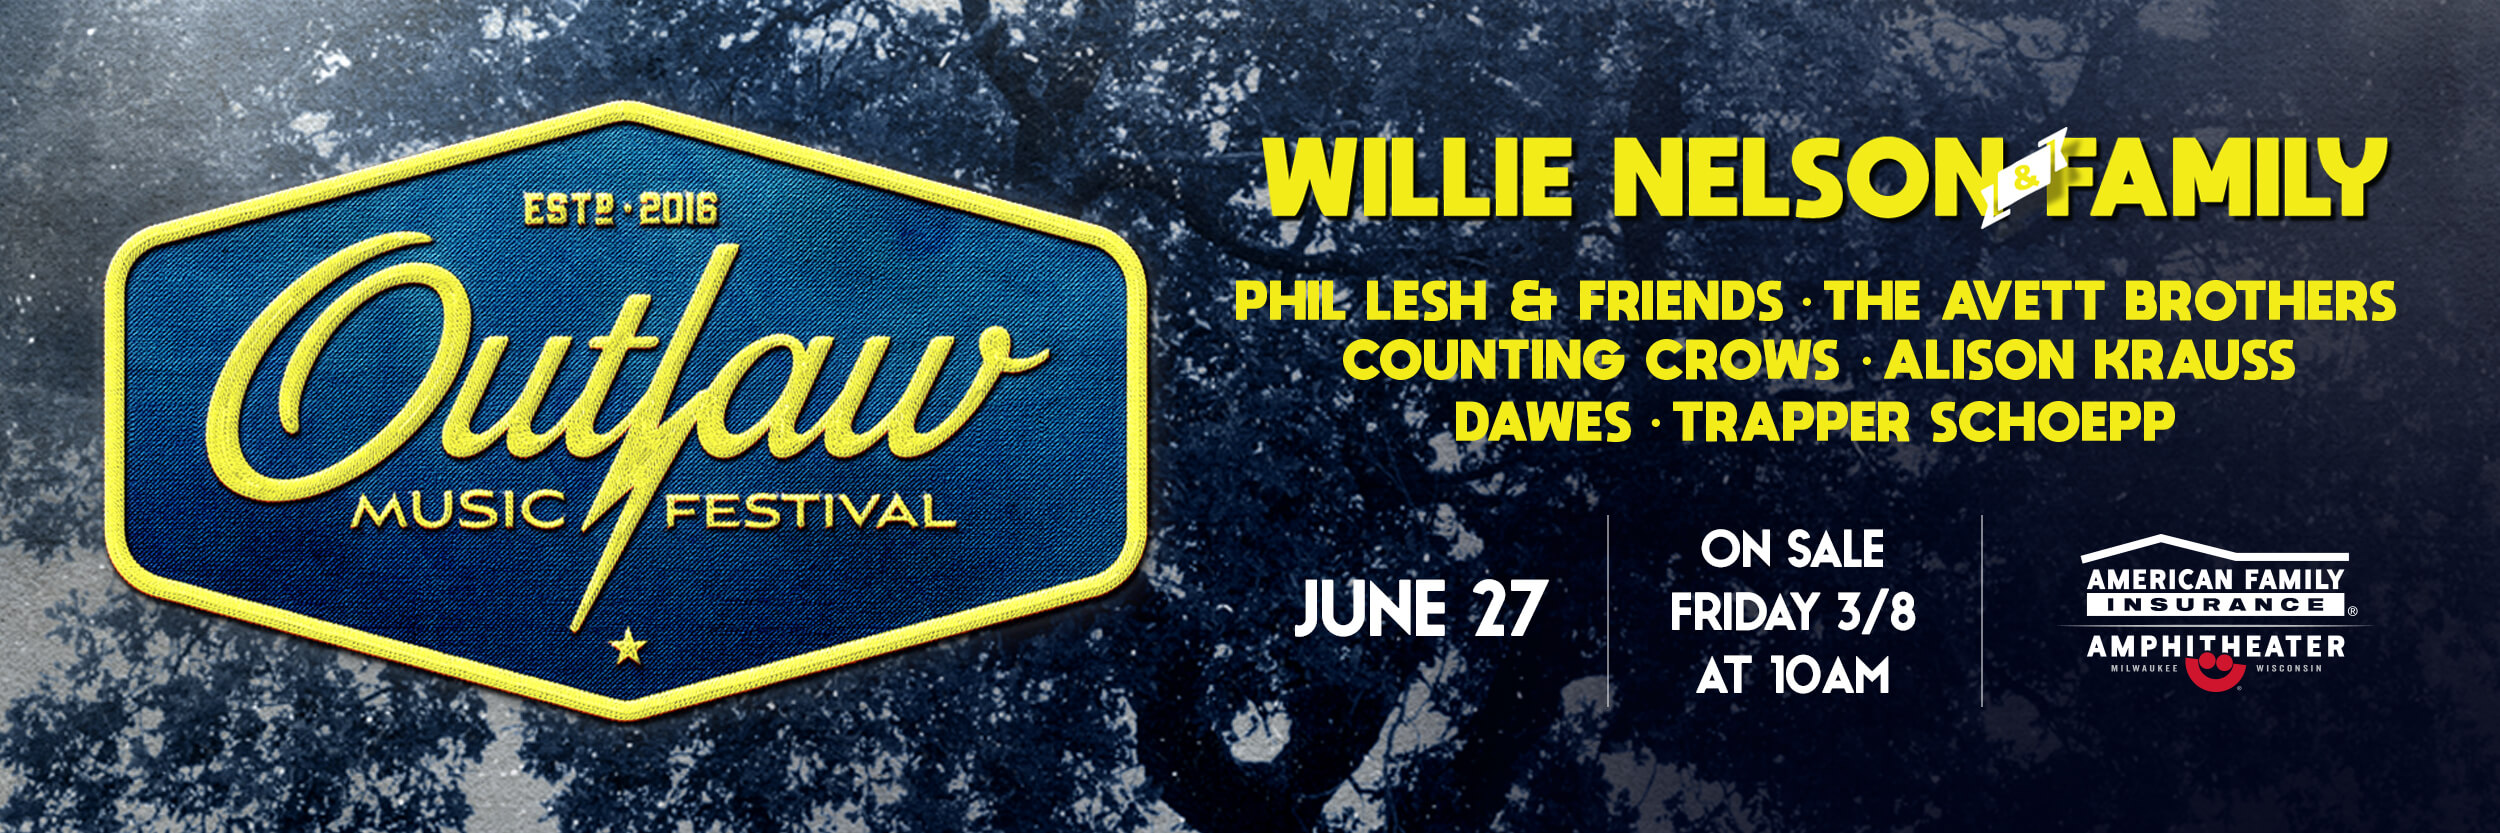 Willie Nelson & Family, Phil Lesh & Friends, The Avett Brothers, Counting Crows, Alison Krauss, Dawes, and Trapper Schoepp Thursday, June 27, 2019 at the American Family Insurance Amphitheater.